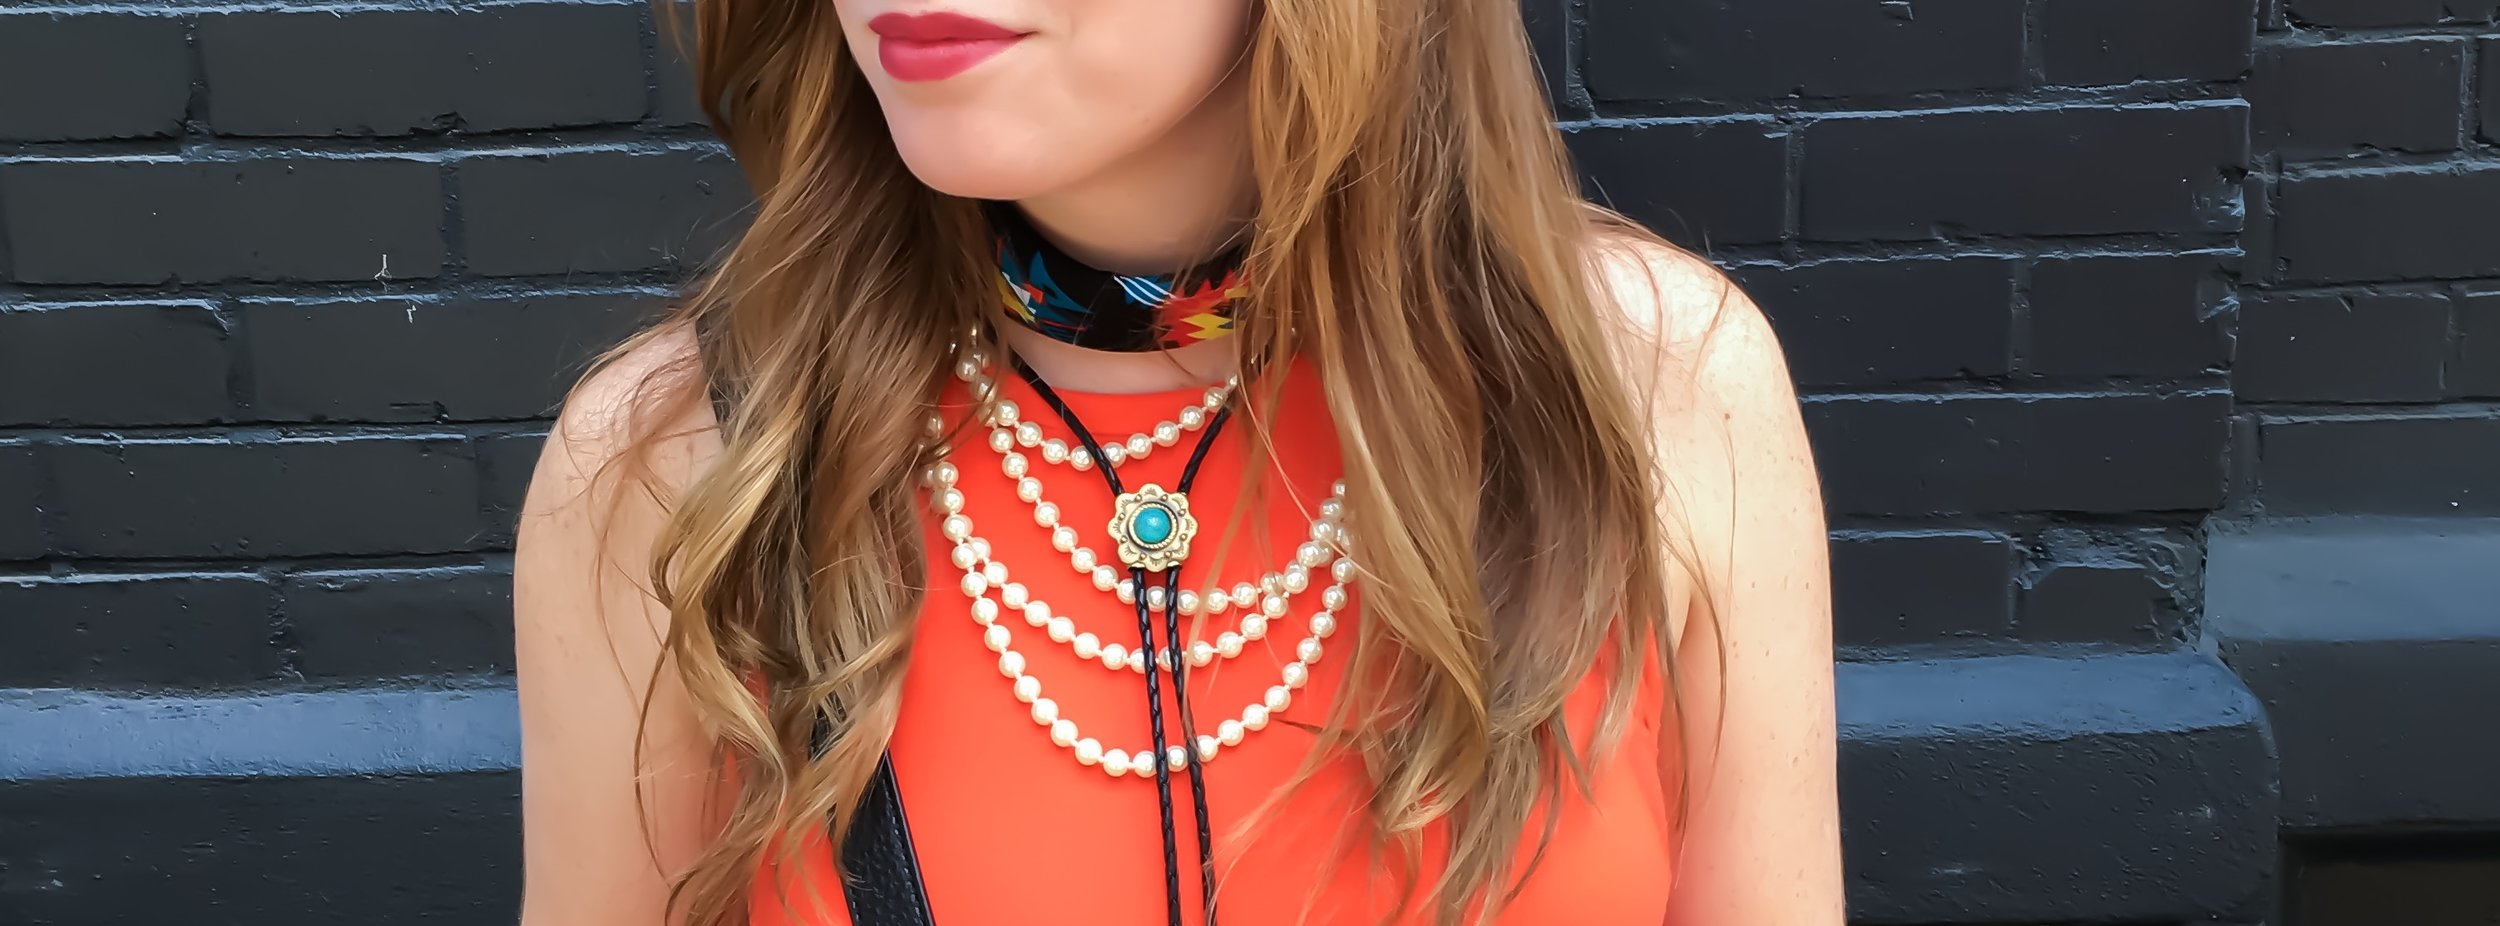 layered_accessories_01